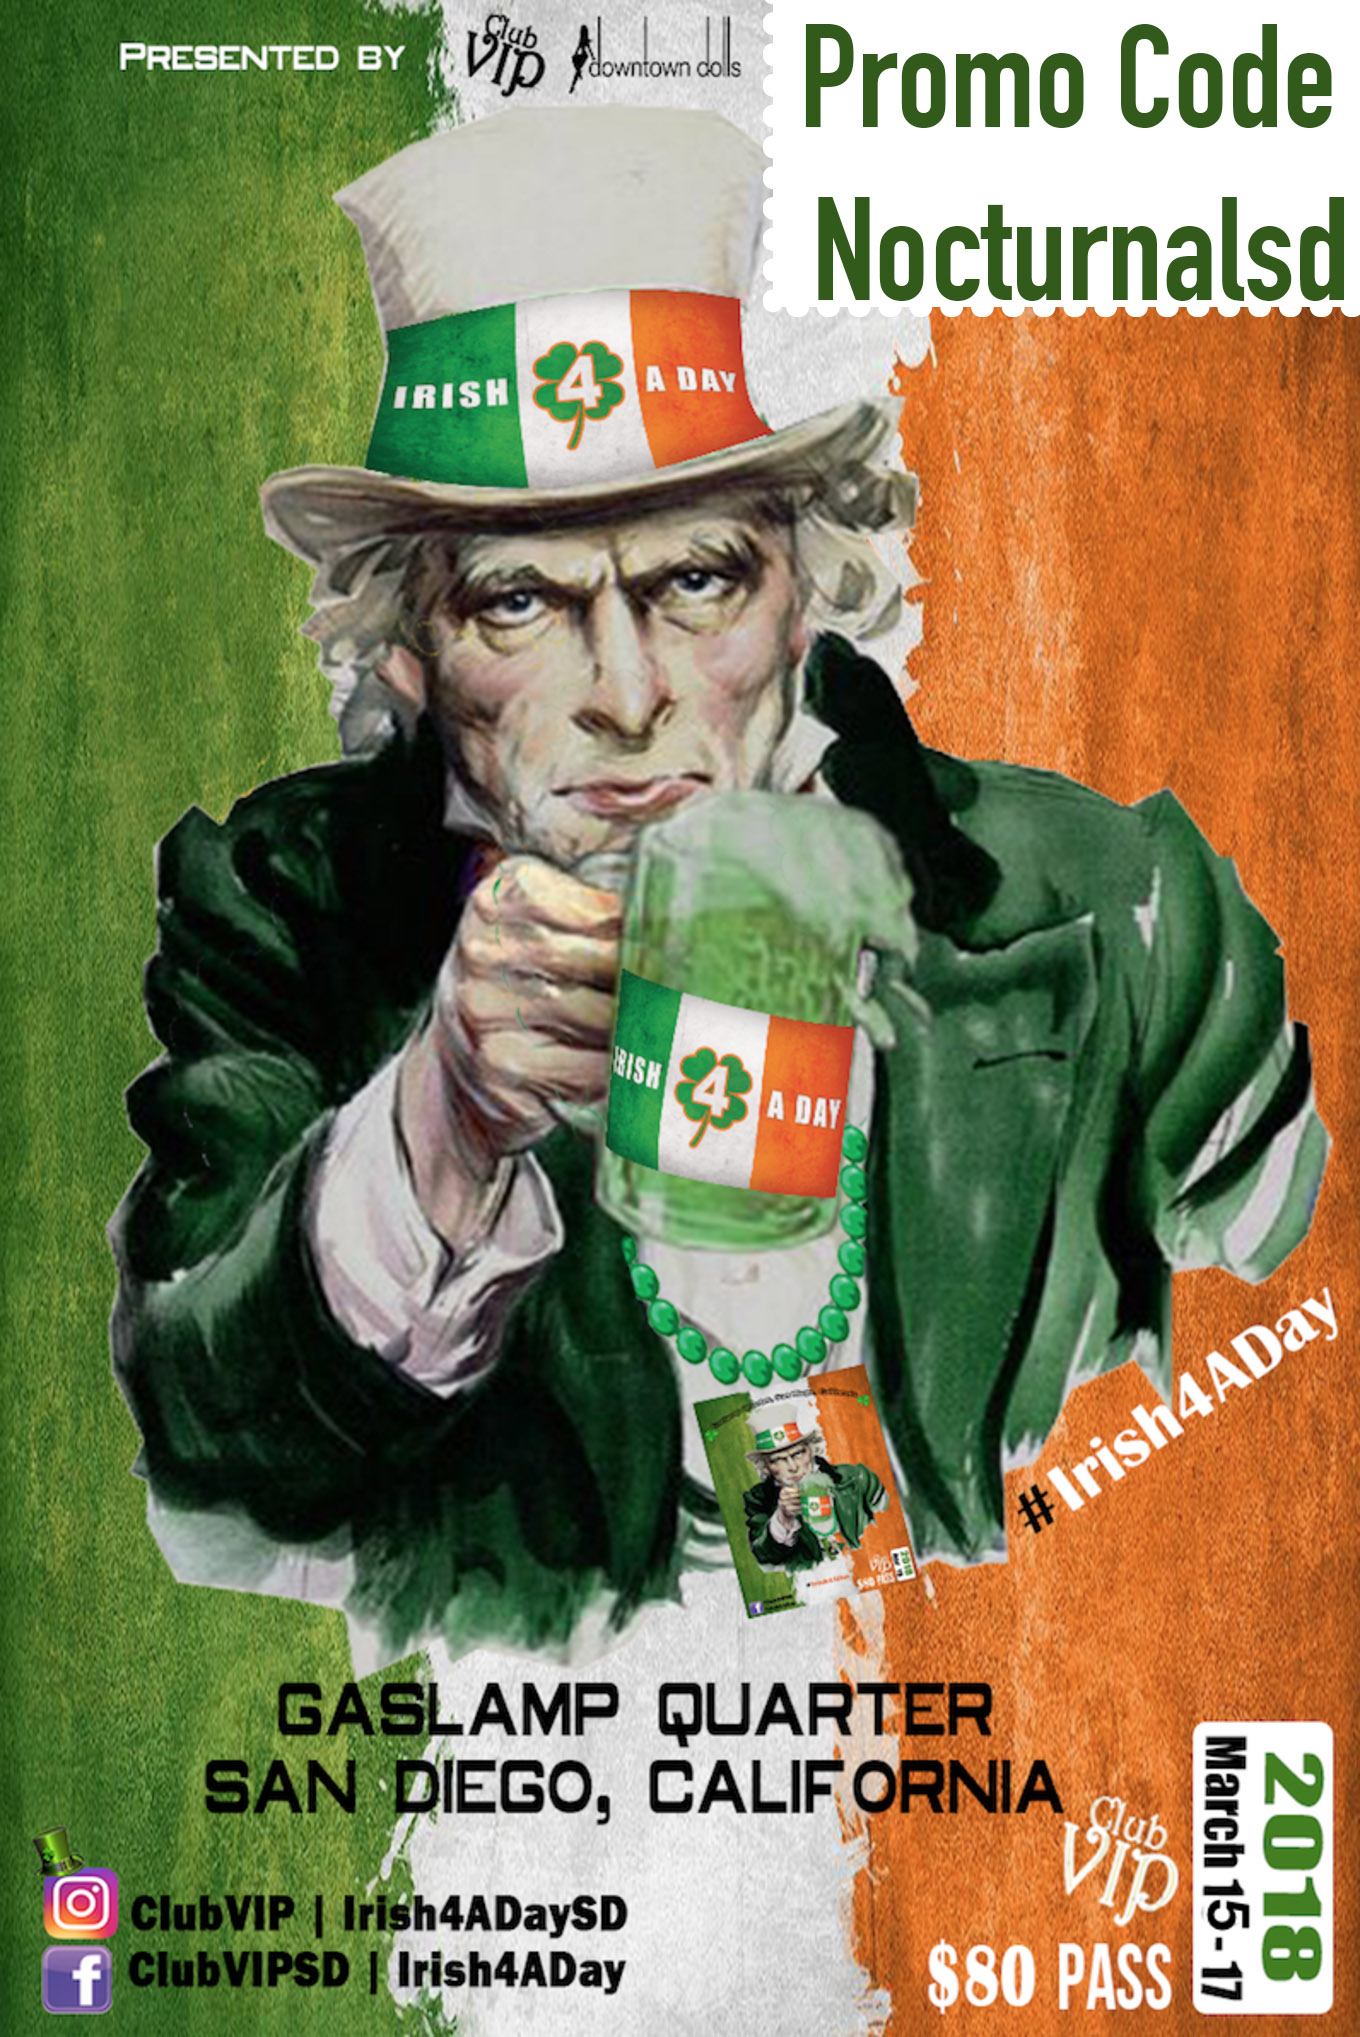 Irish for a day 2019 promotional code coupon discount tickets